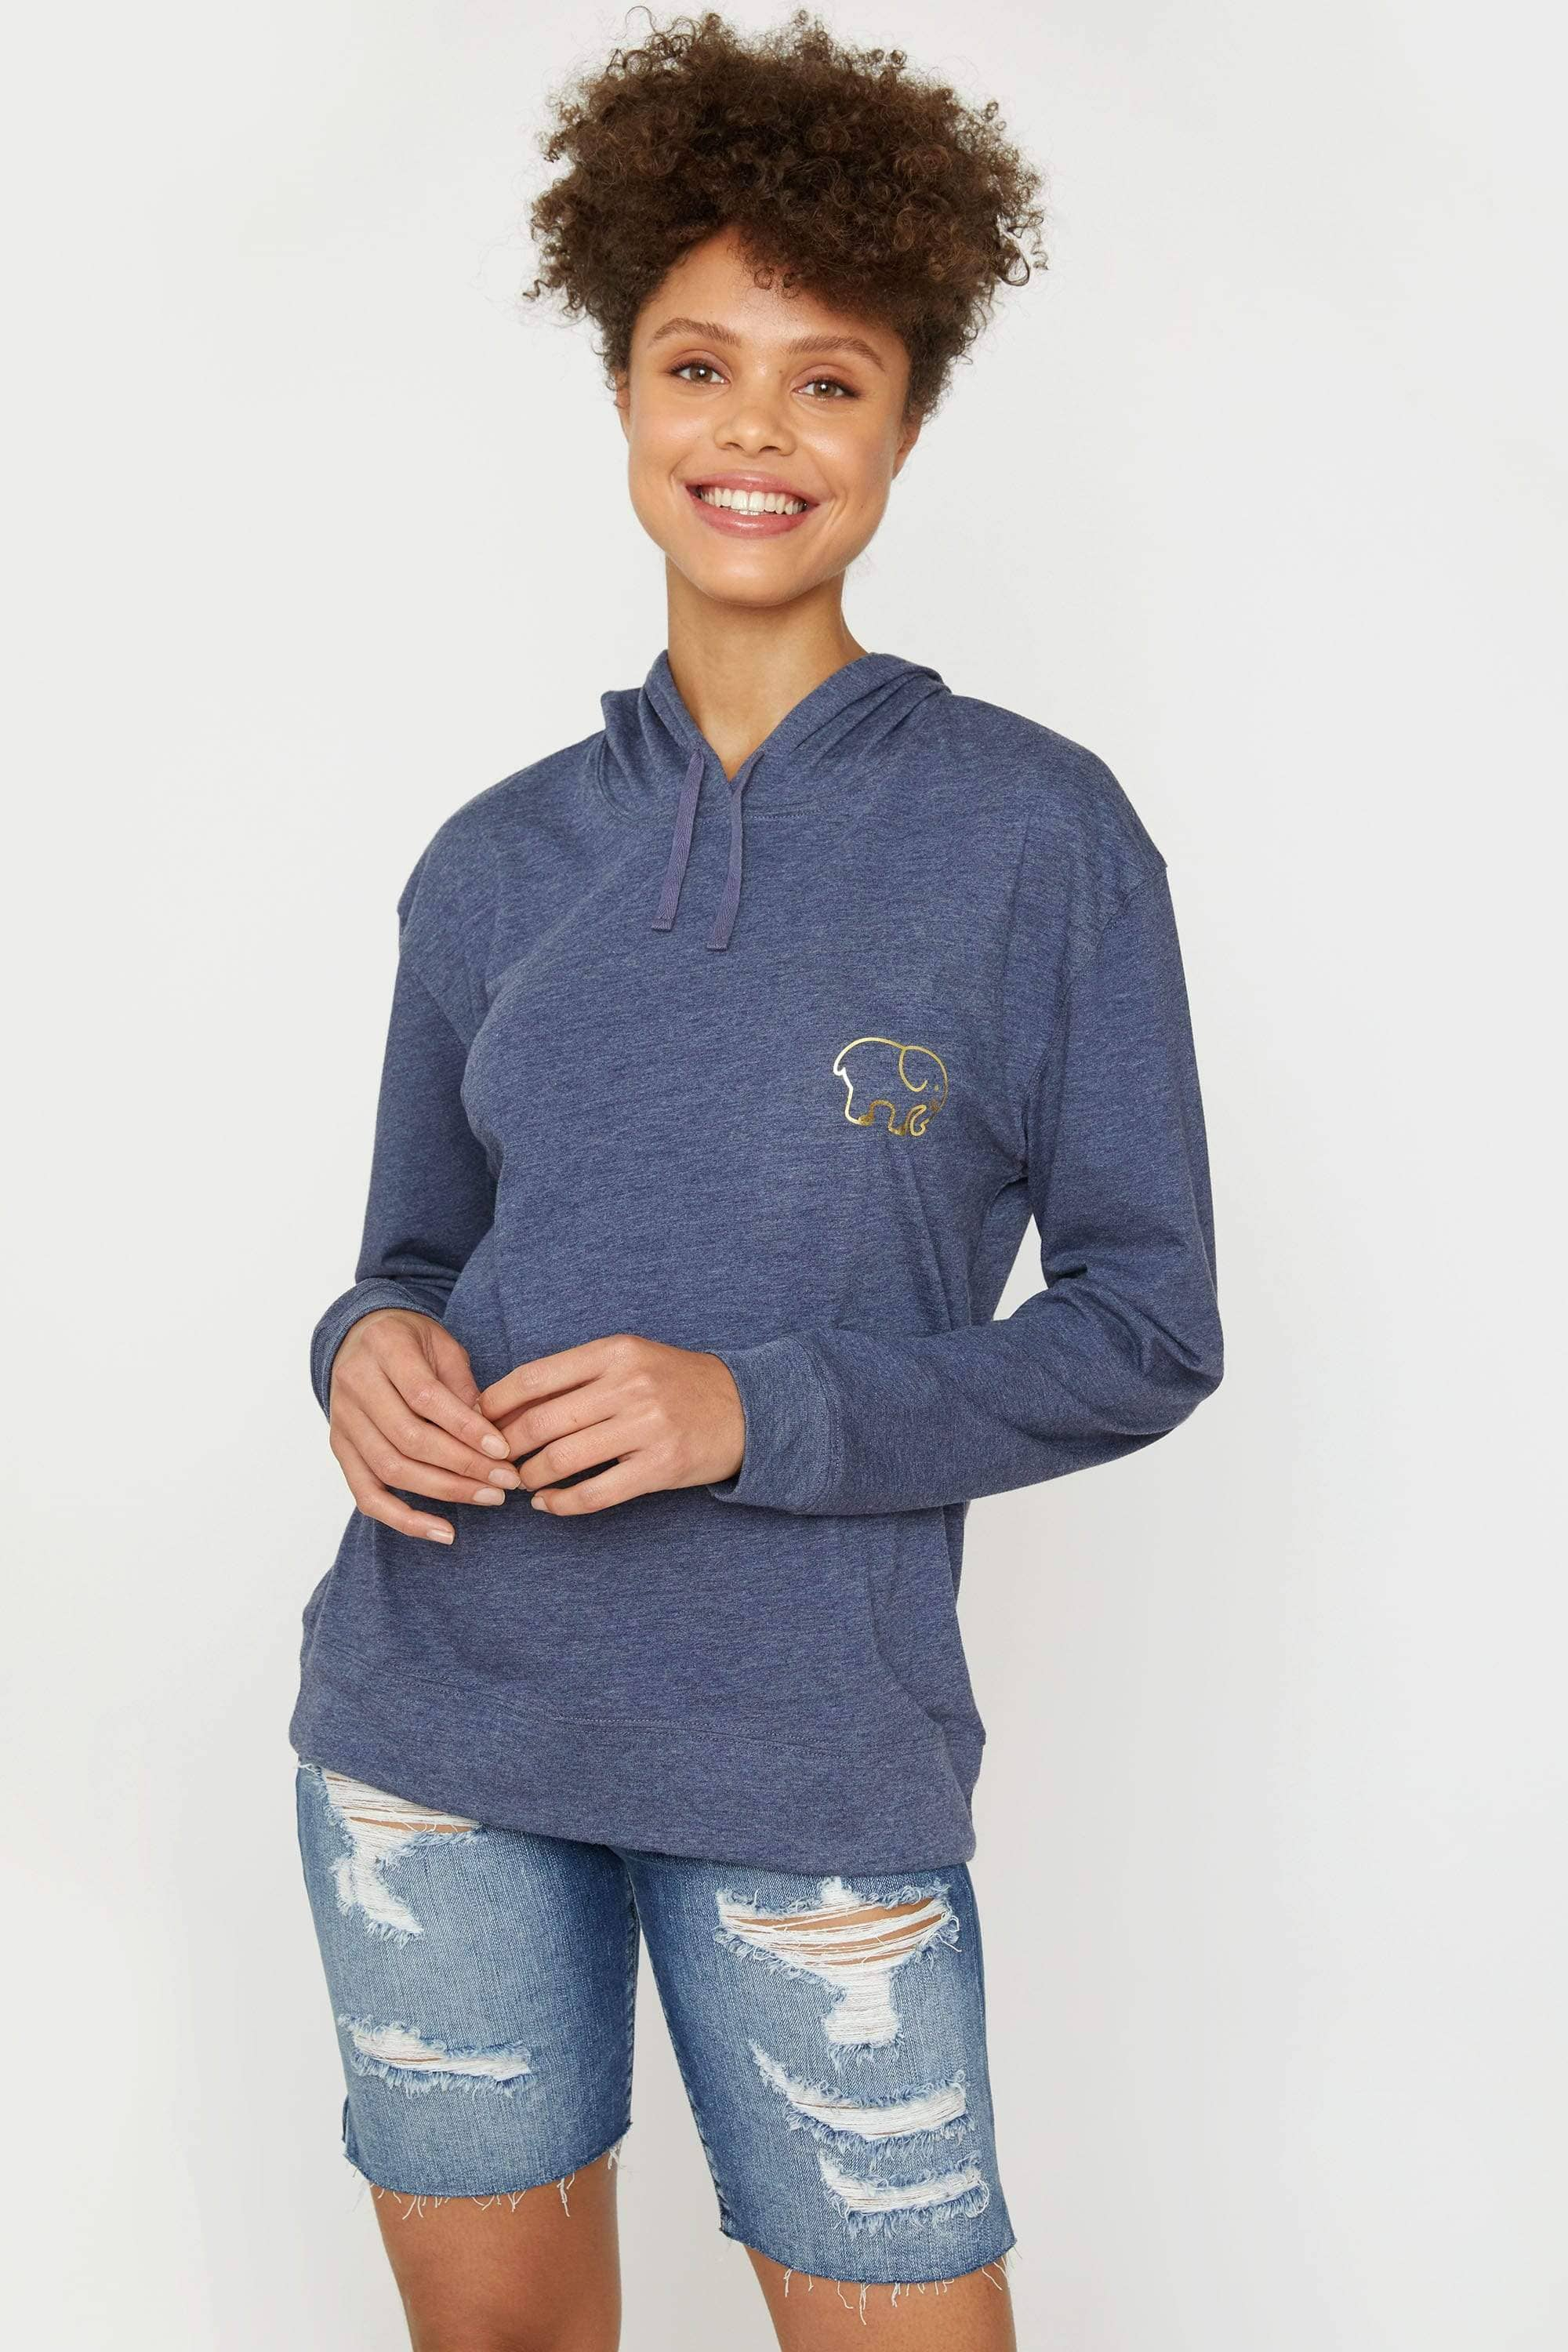 Ivory Ella Women's Sweatshirts Navy Heather Tshirt Hoodie